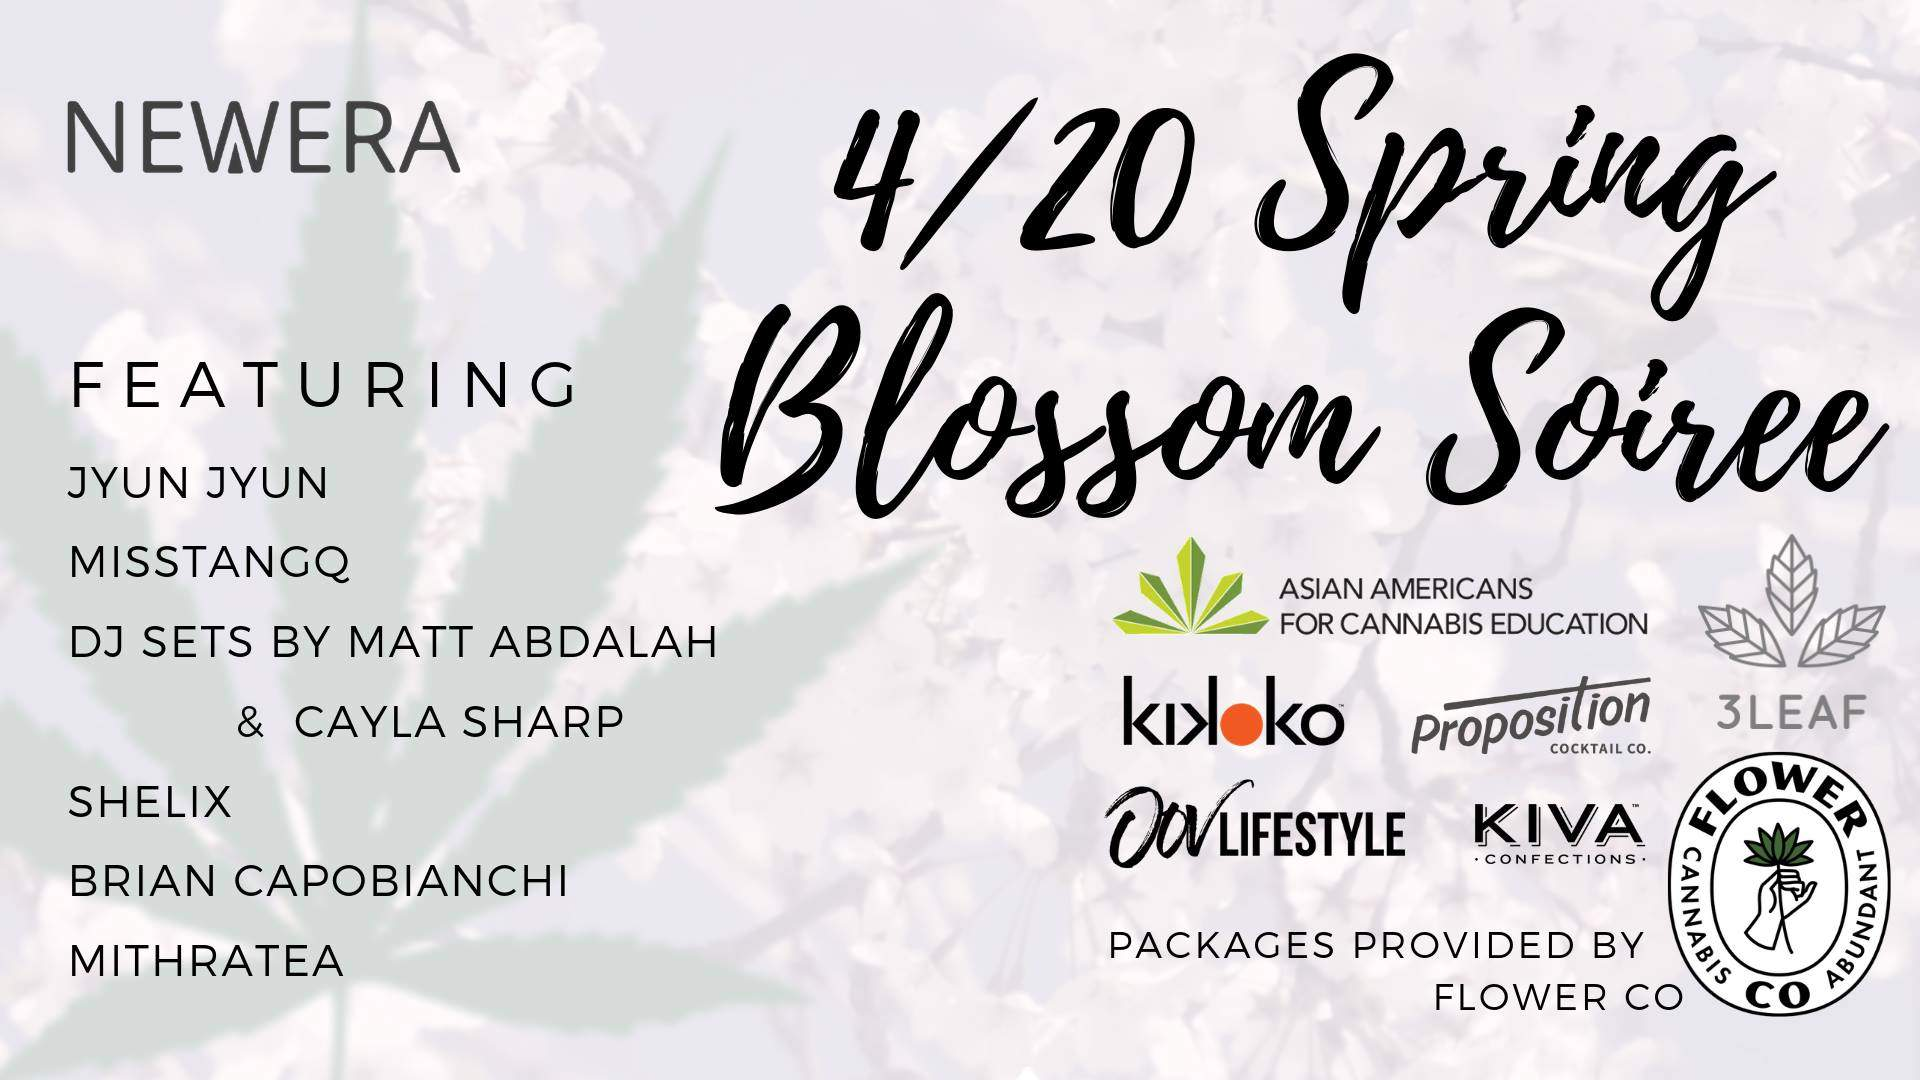 420 Spring Blossom Soiree